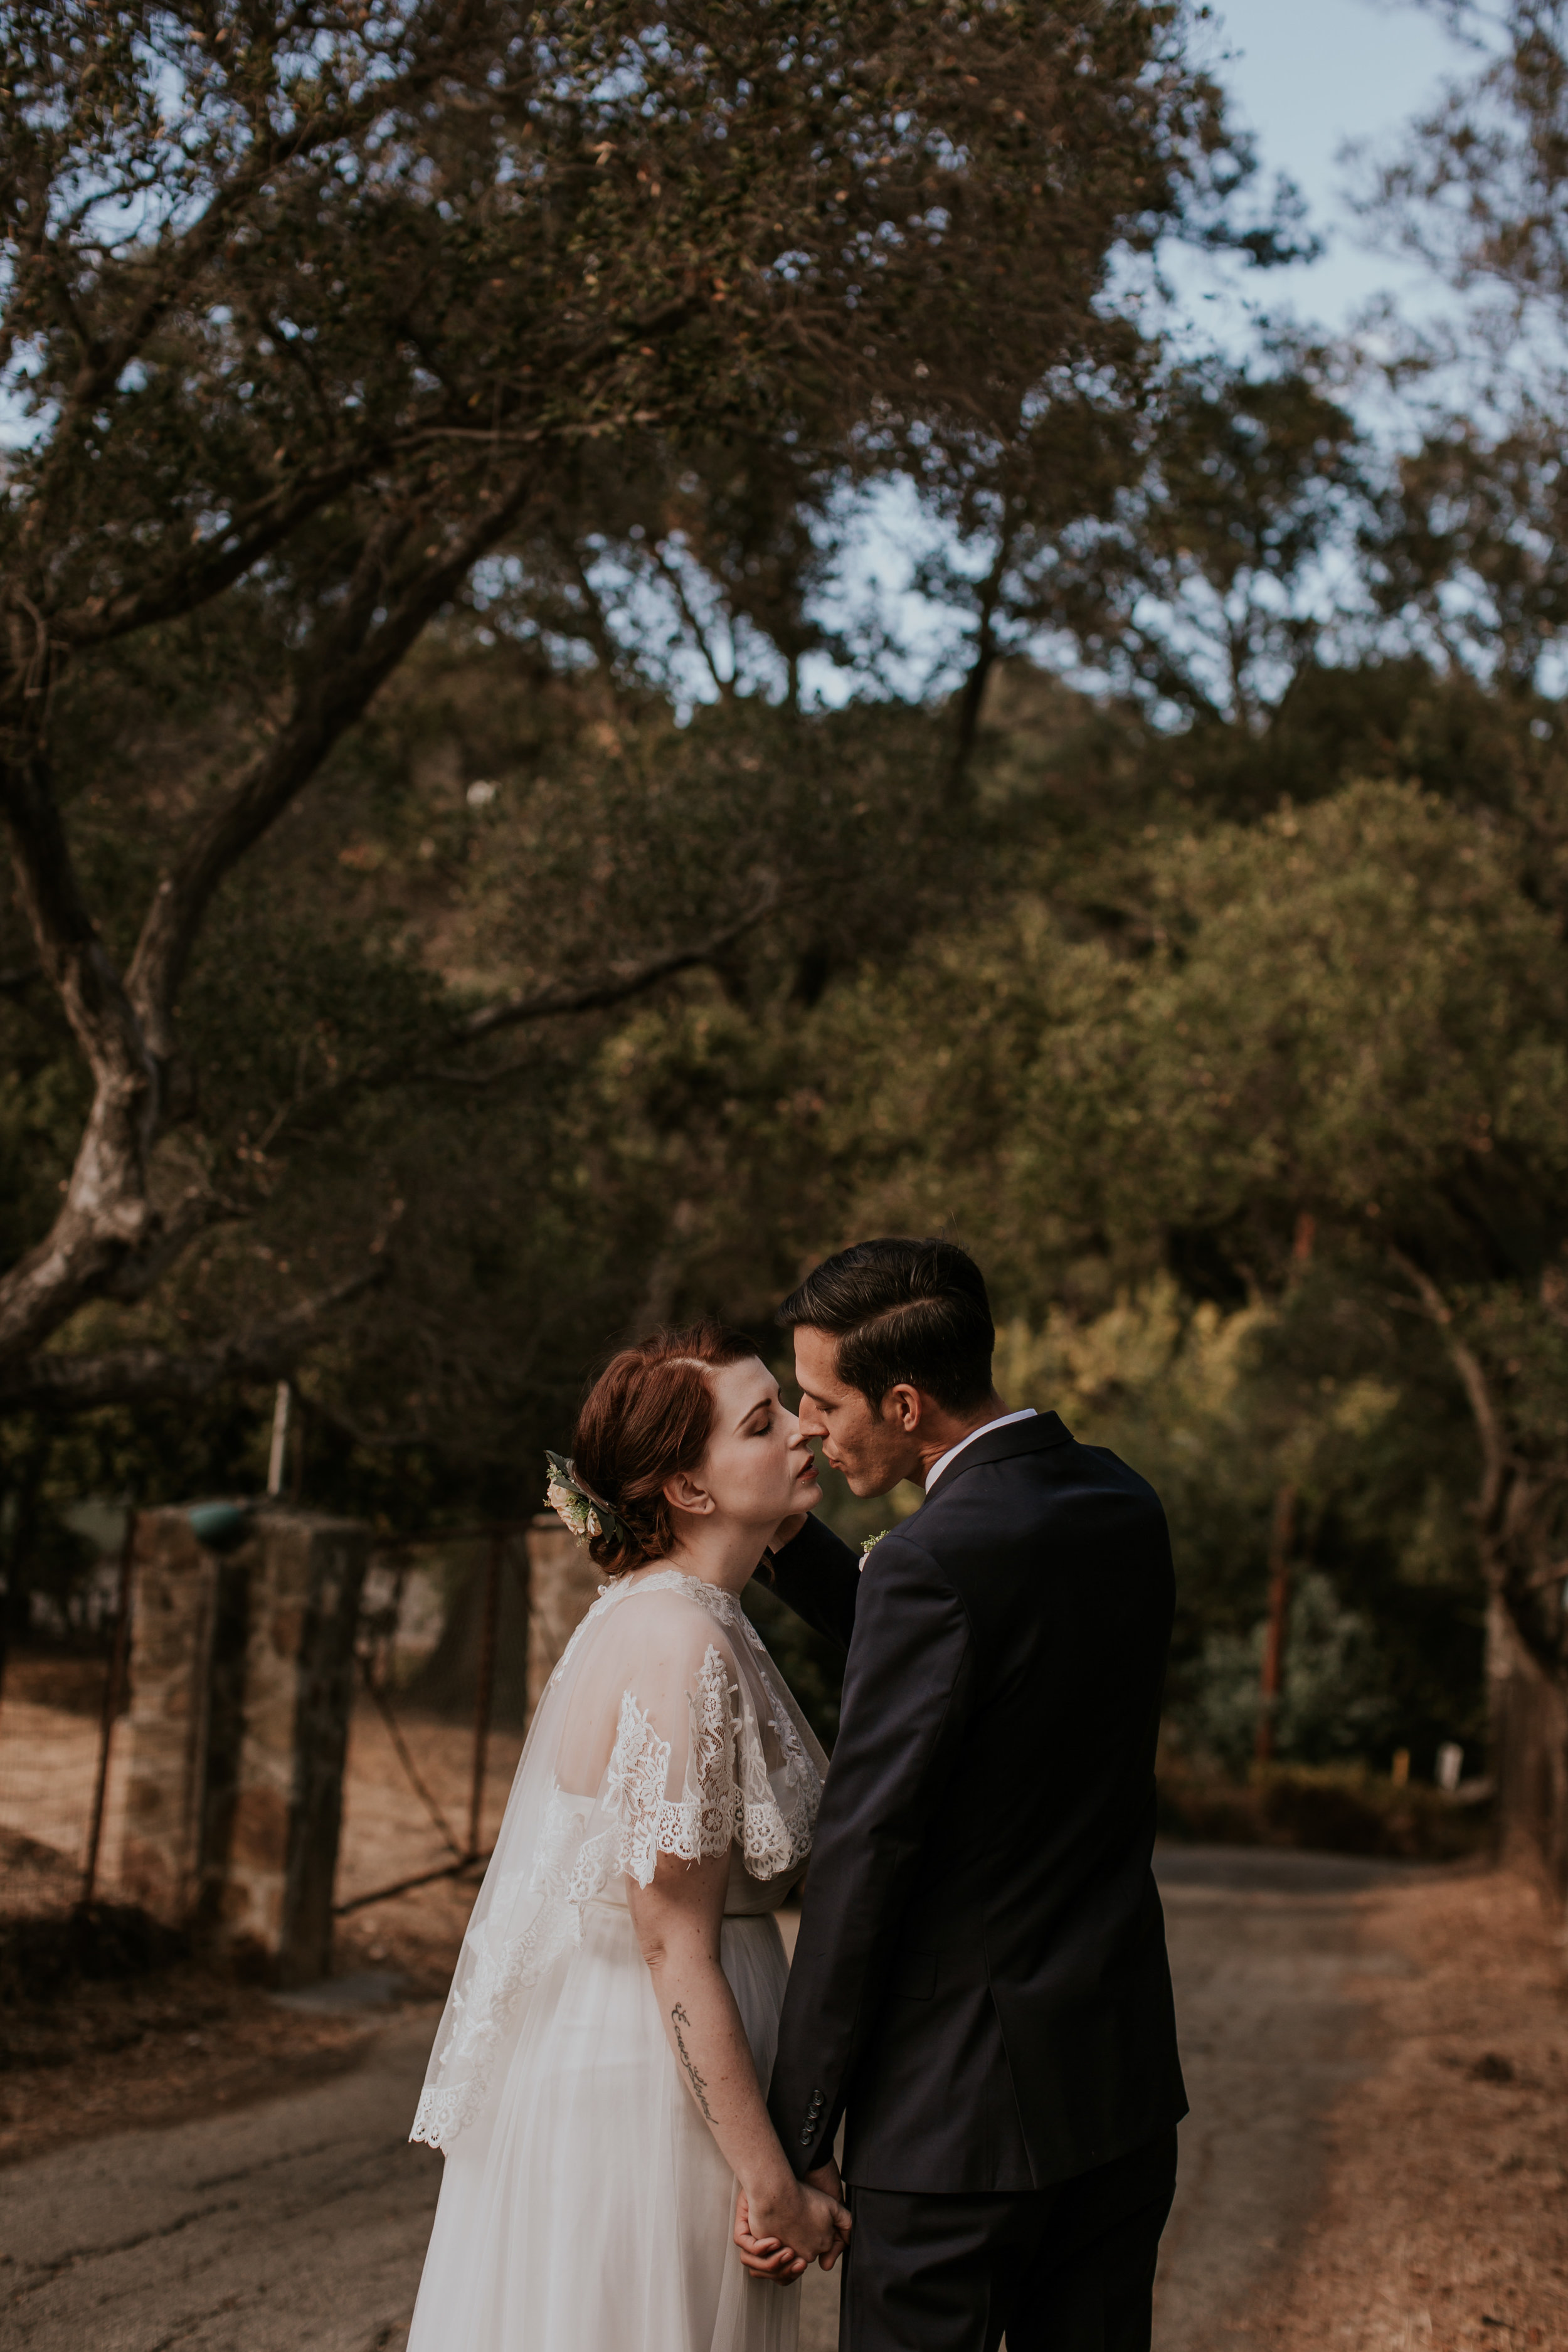 Aryn and Dave Inn of the Seventh Ray Topanga Canyon Wedding-13.jpg